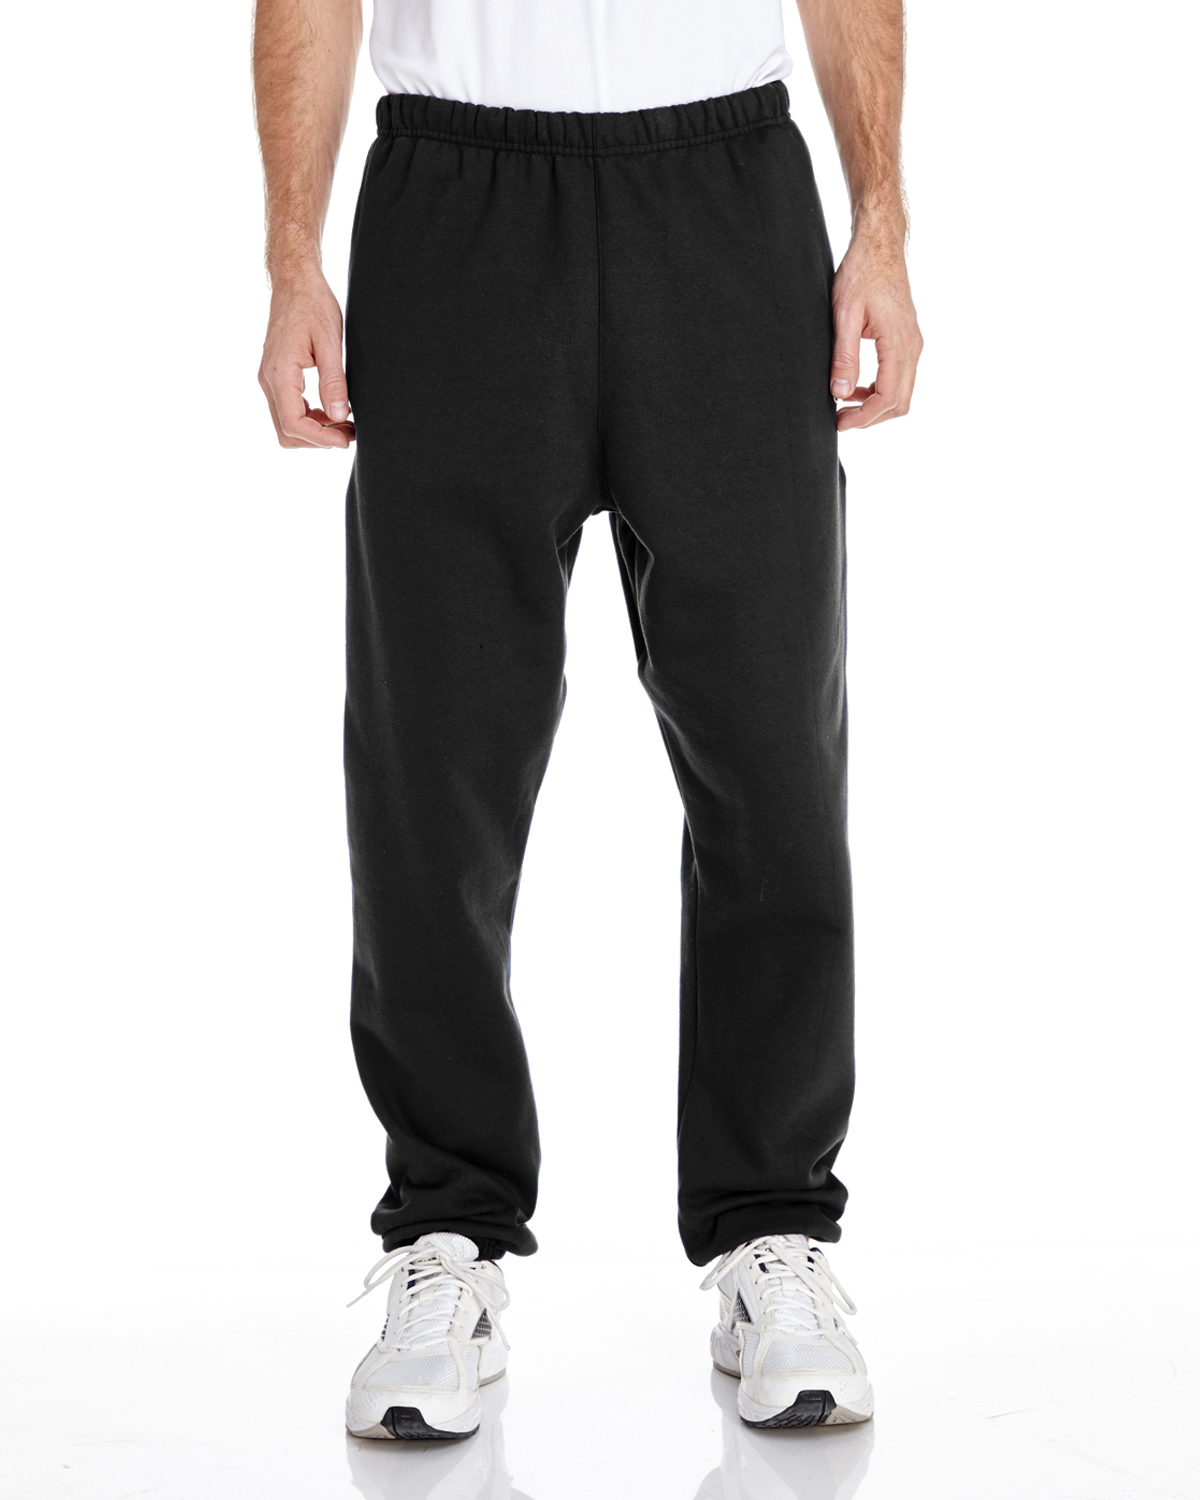 X-Large RAWLINGS Sporting Goods Mens Adult High Performance 147 Cloth Game Pant Black